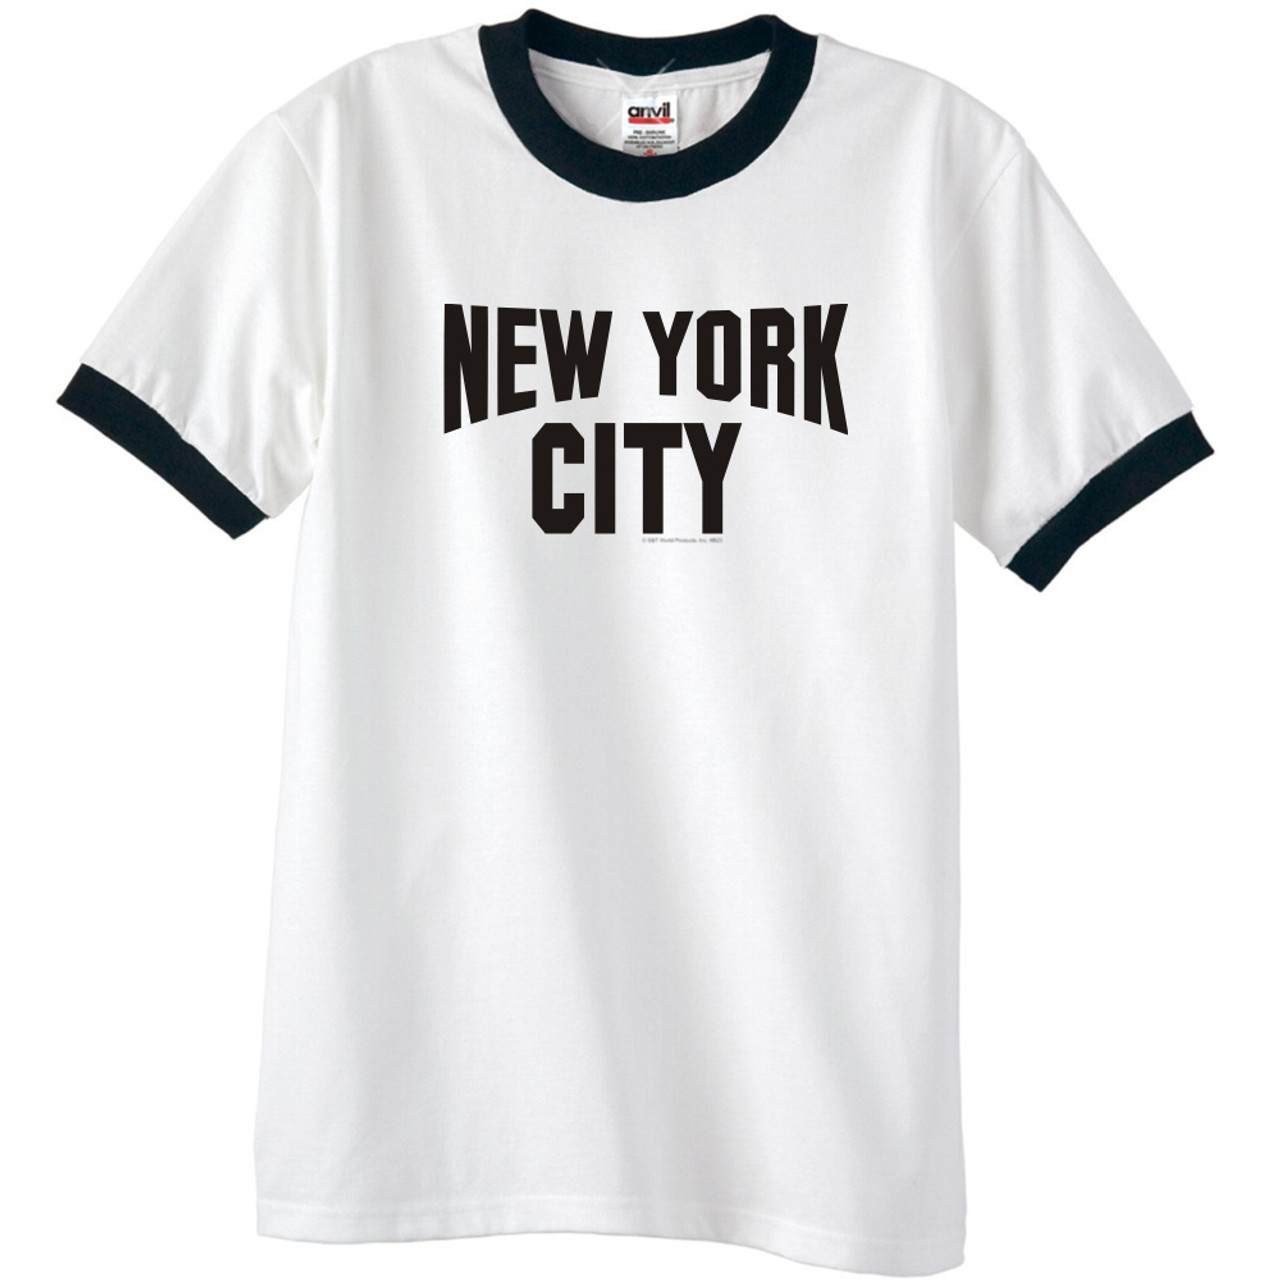 New York City Ringer T-Shirt - John Lennon. Brand   Clothing 4ca3326df9f